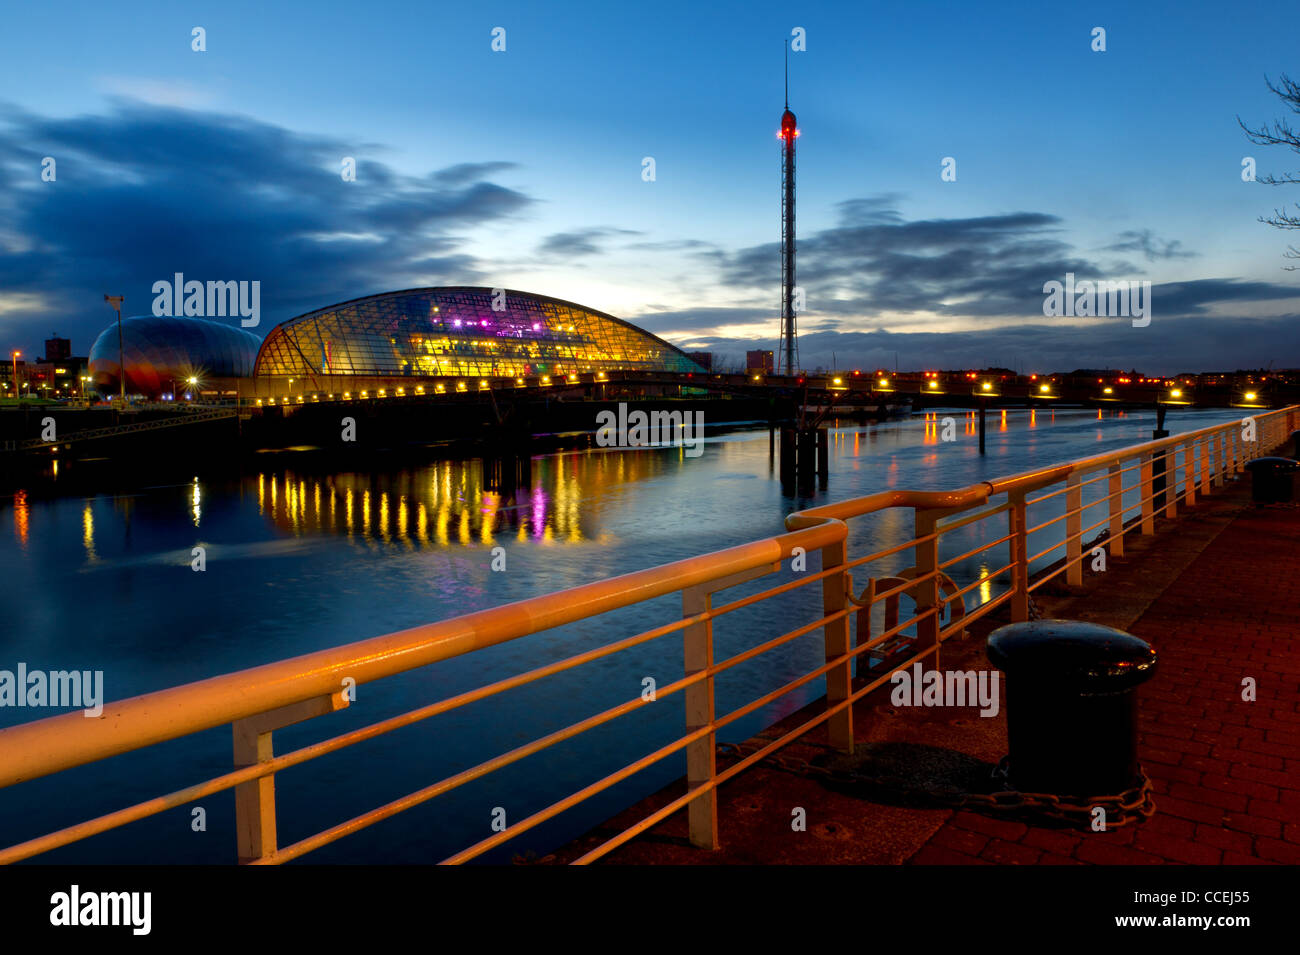 Glasgow Science Centre & Tower by the River Clyde, Glasgow at night. - Stock Image